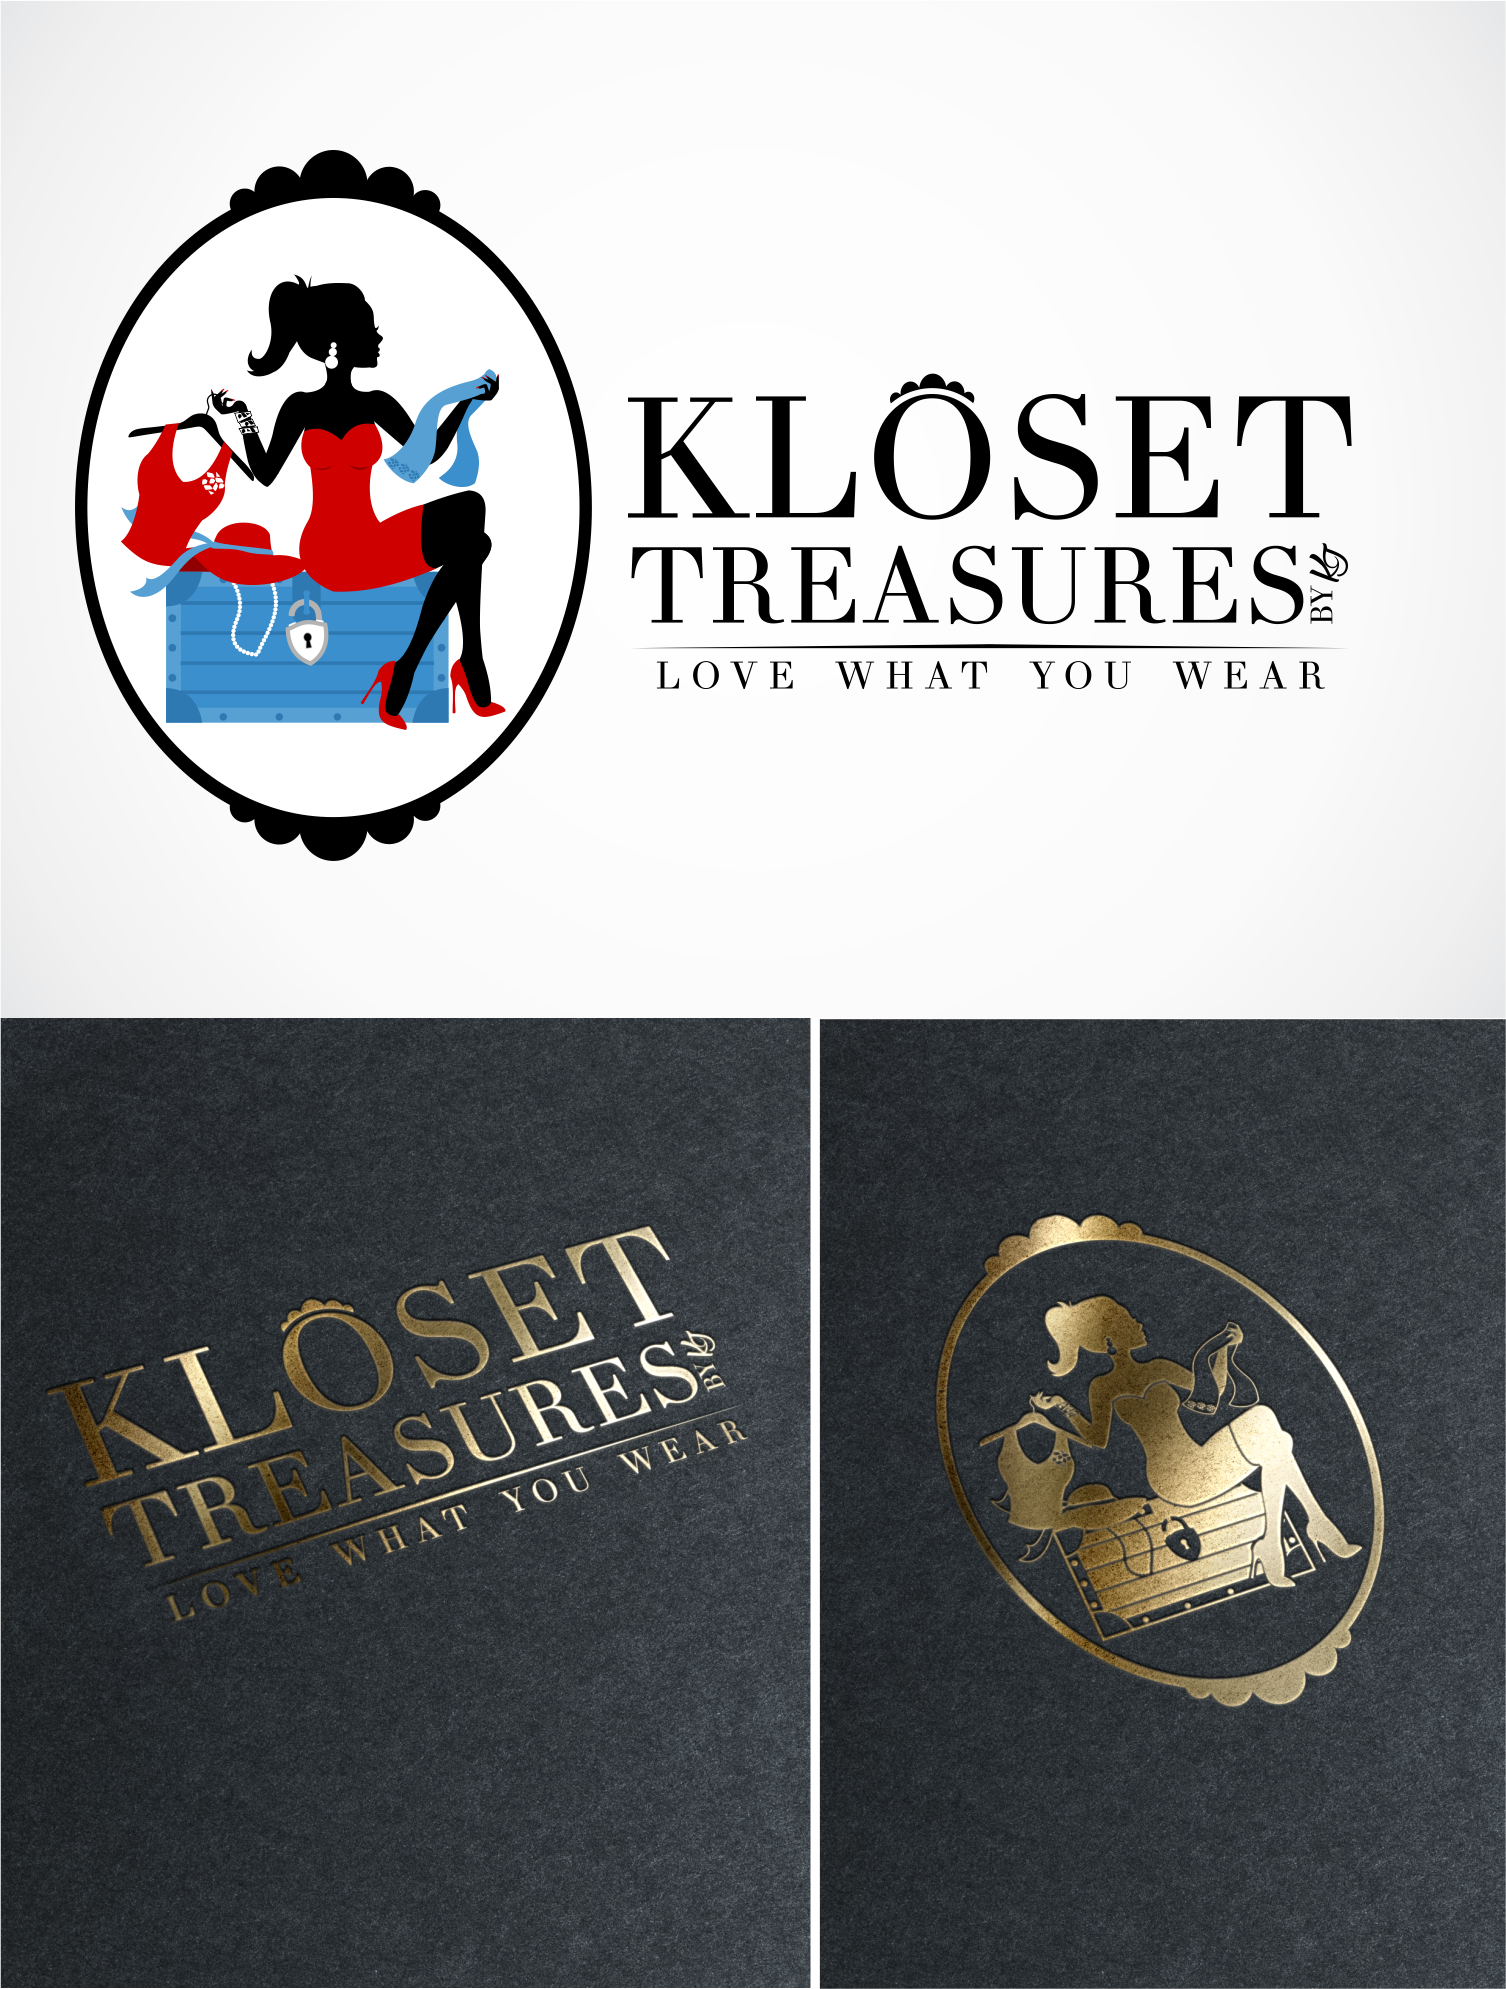 Create a Vintage Look for Kloset Treasures LOGO an Online Clothing Boutique!